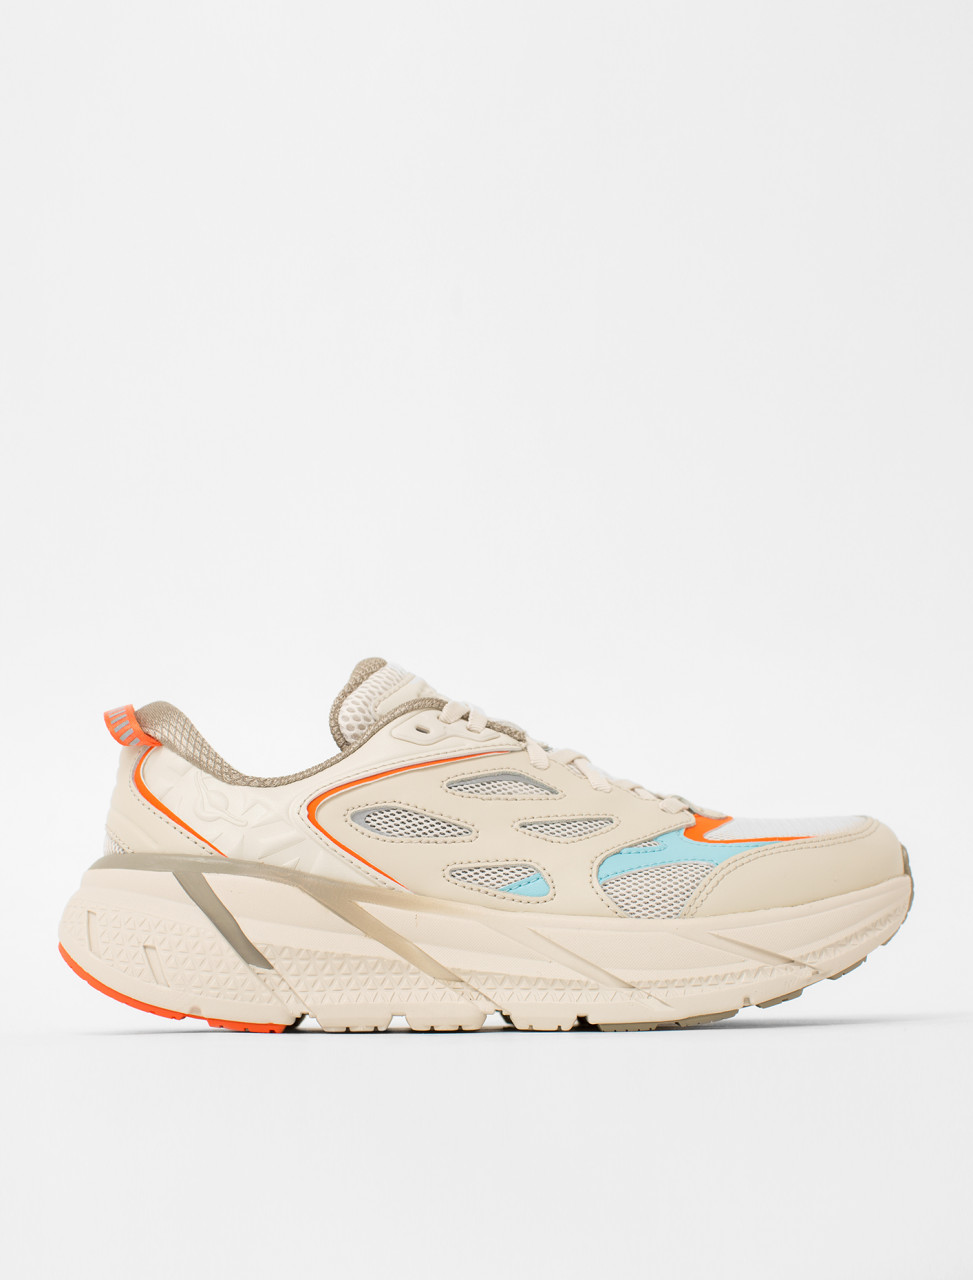 x Opening Ceremony Clifton Sneaker